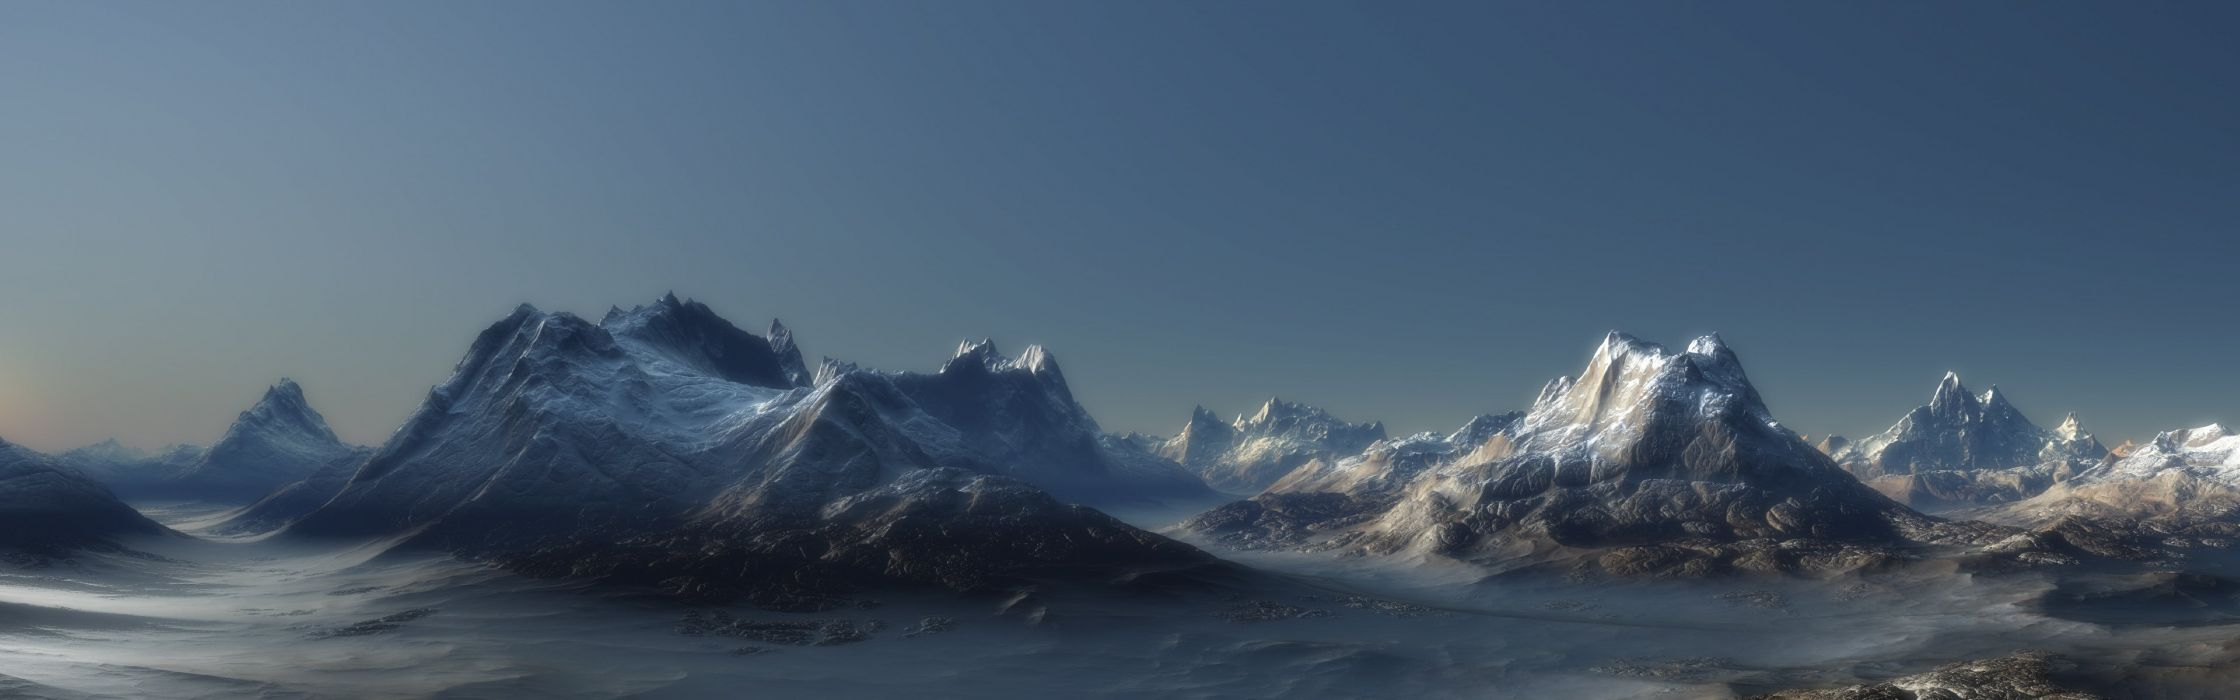 mountains landscapes panorama wallpaper